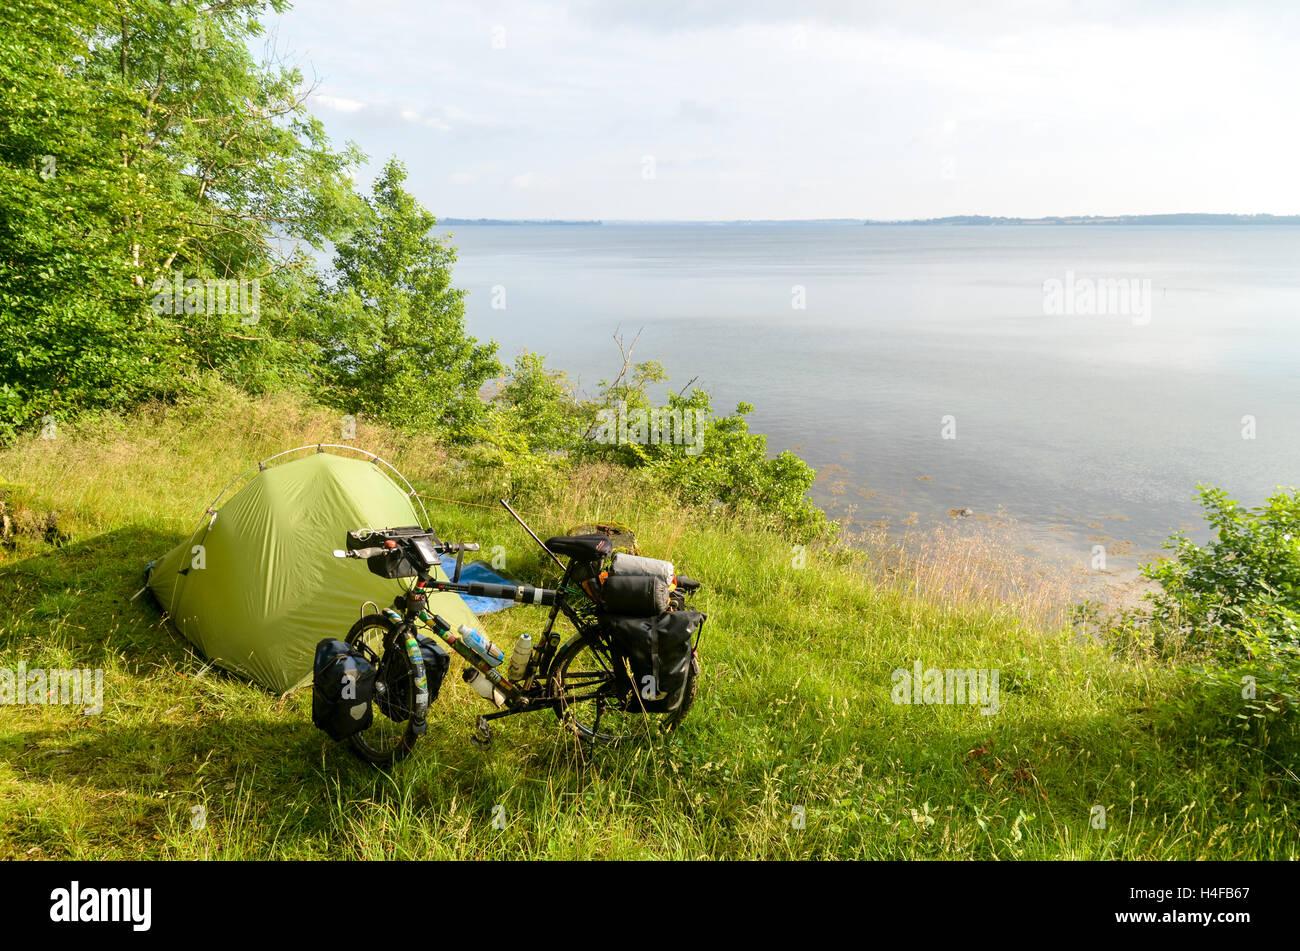 Bicycke and tent by the Flensborg fjord, Germany - Stock Image